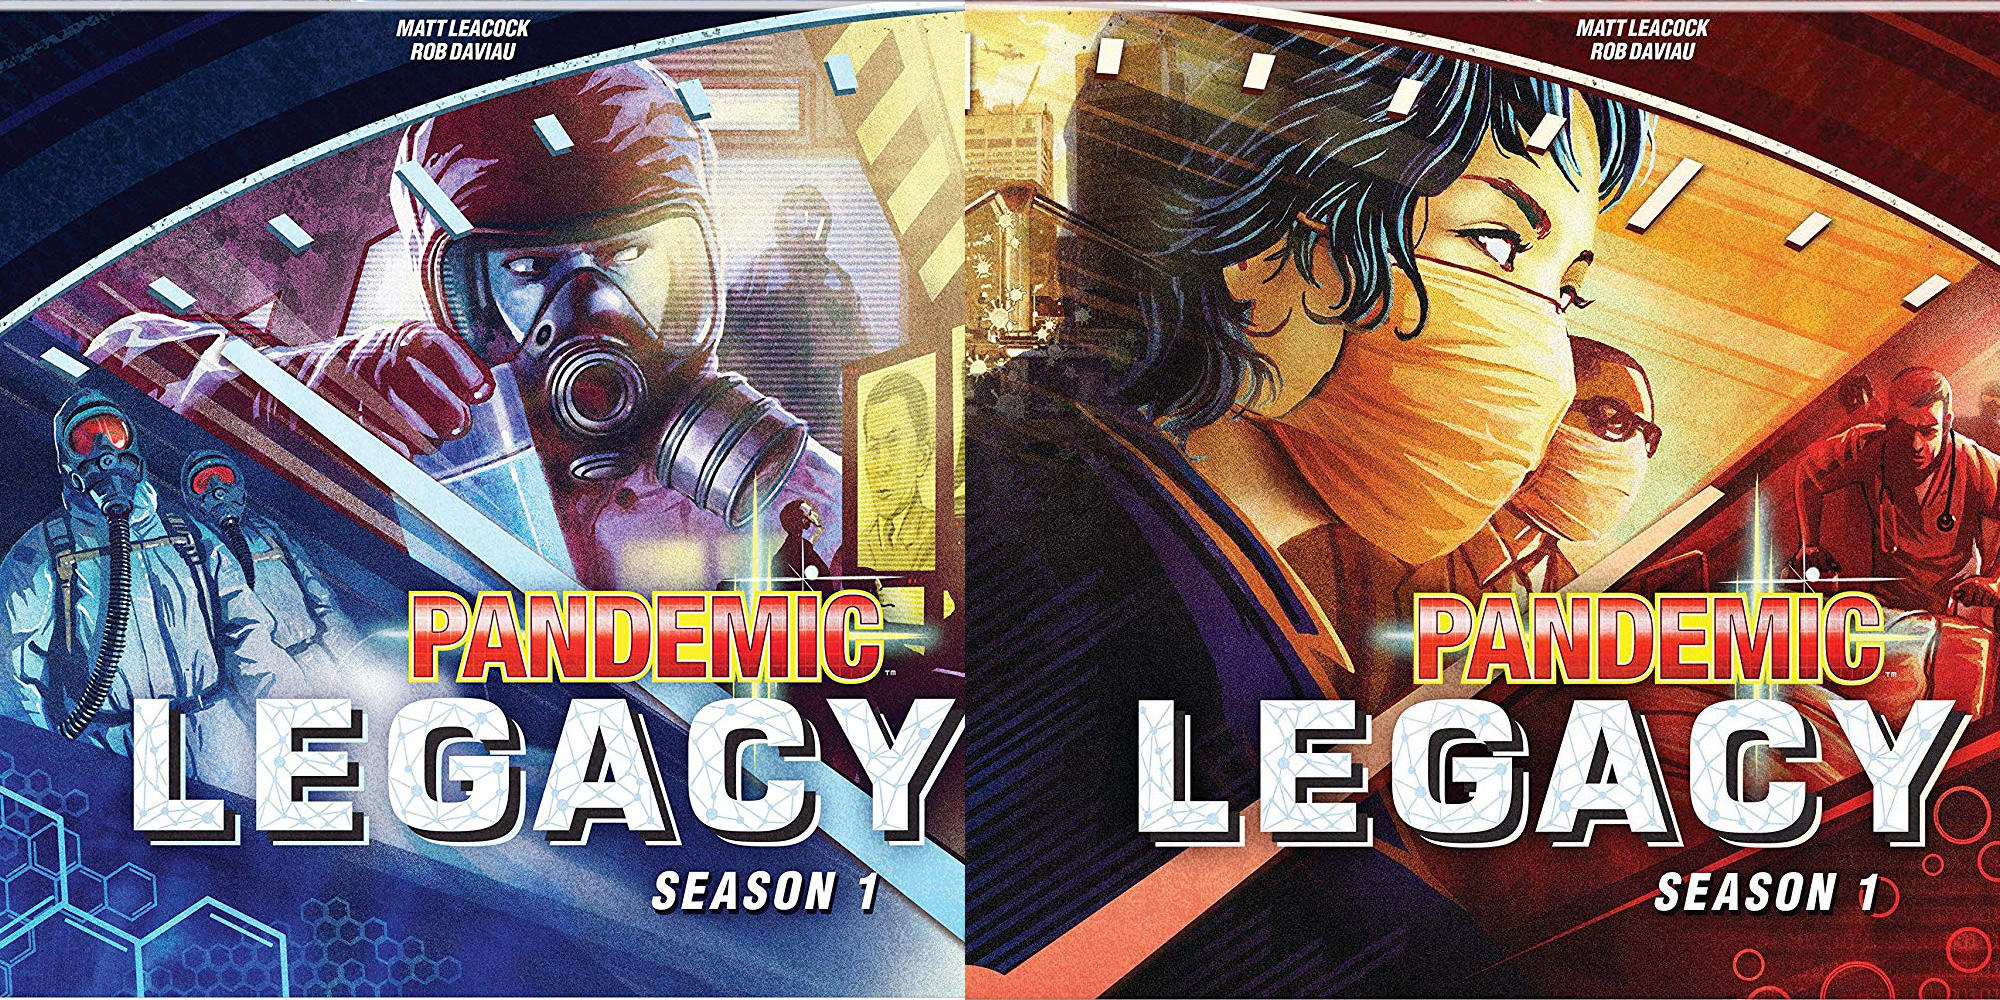 Board game deals from $10 Prime shipped: Pandemic Legacy, Monopoly, Ticket to Ride, more